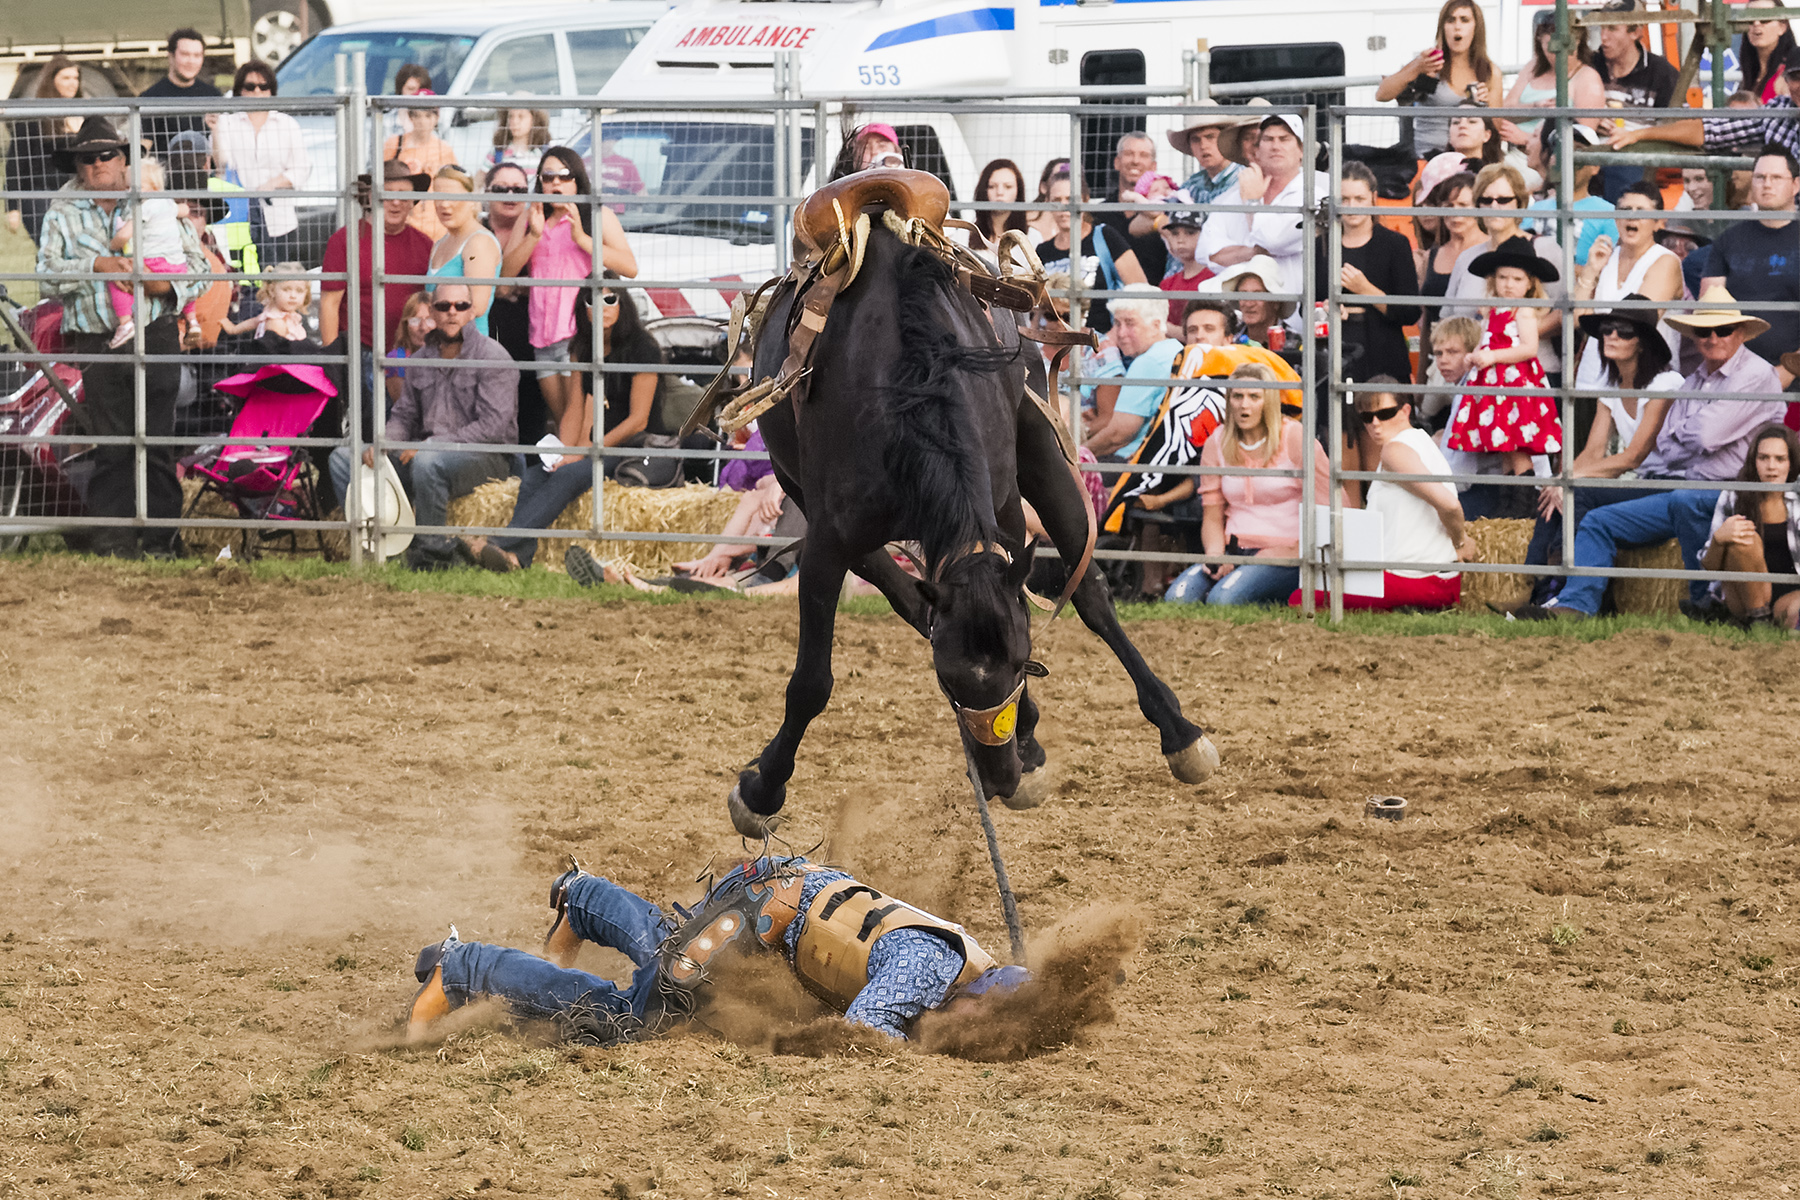 Brian_Jones_Rodeo Thrills and Spills_Face Plant_5.jpg